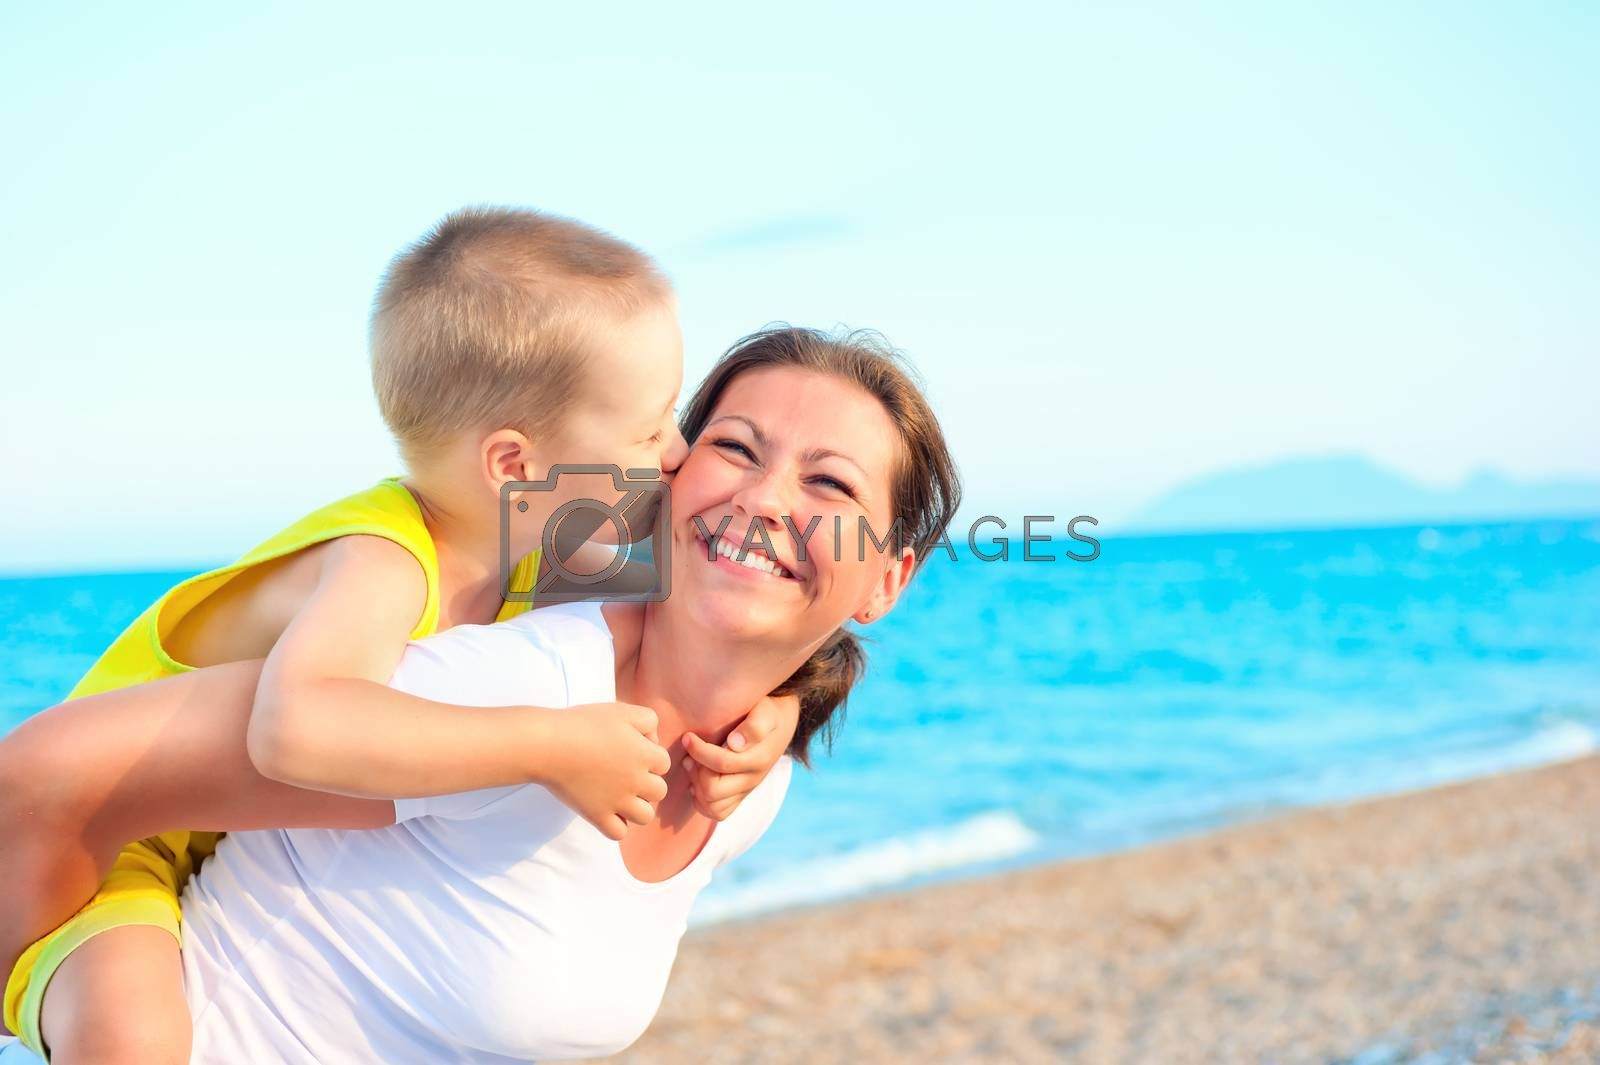 son kissing and hugging her mother on the background of the sea